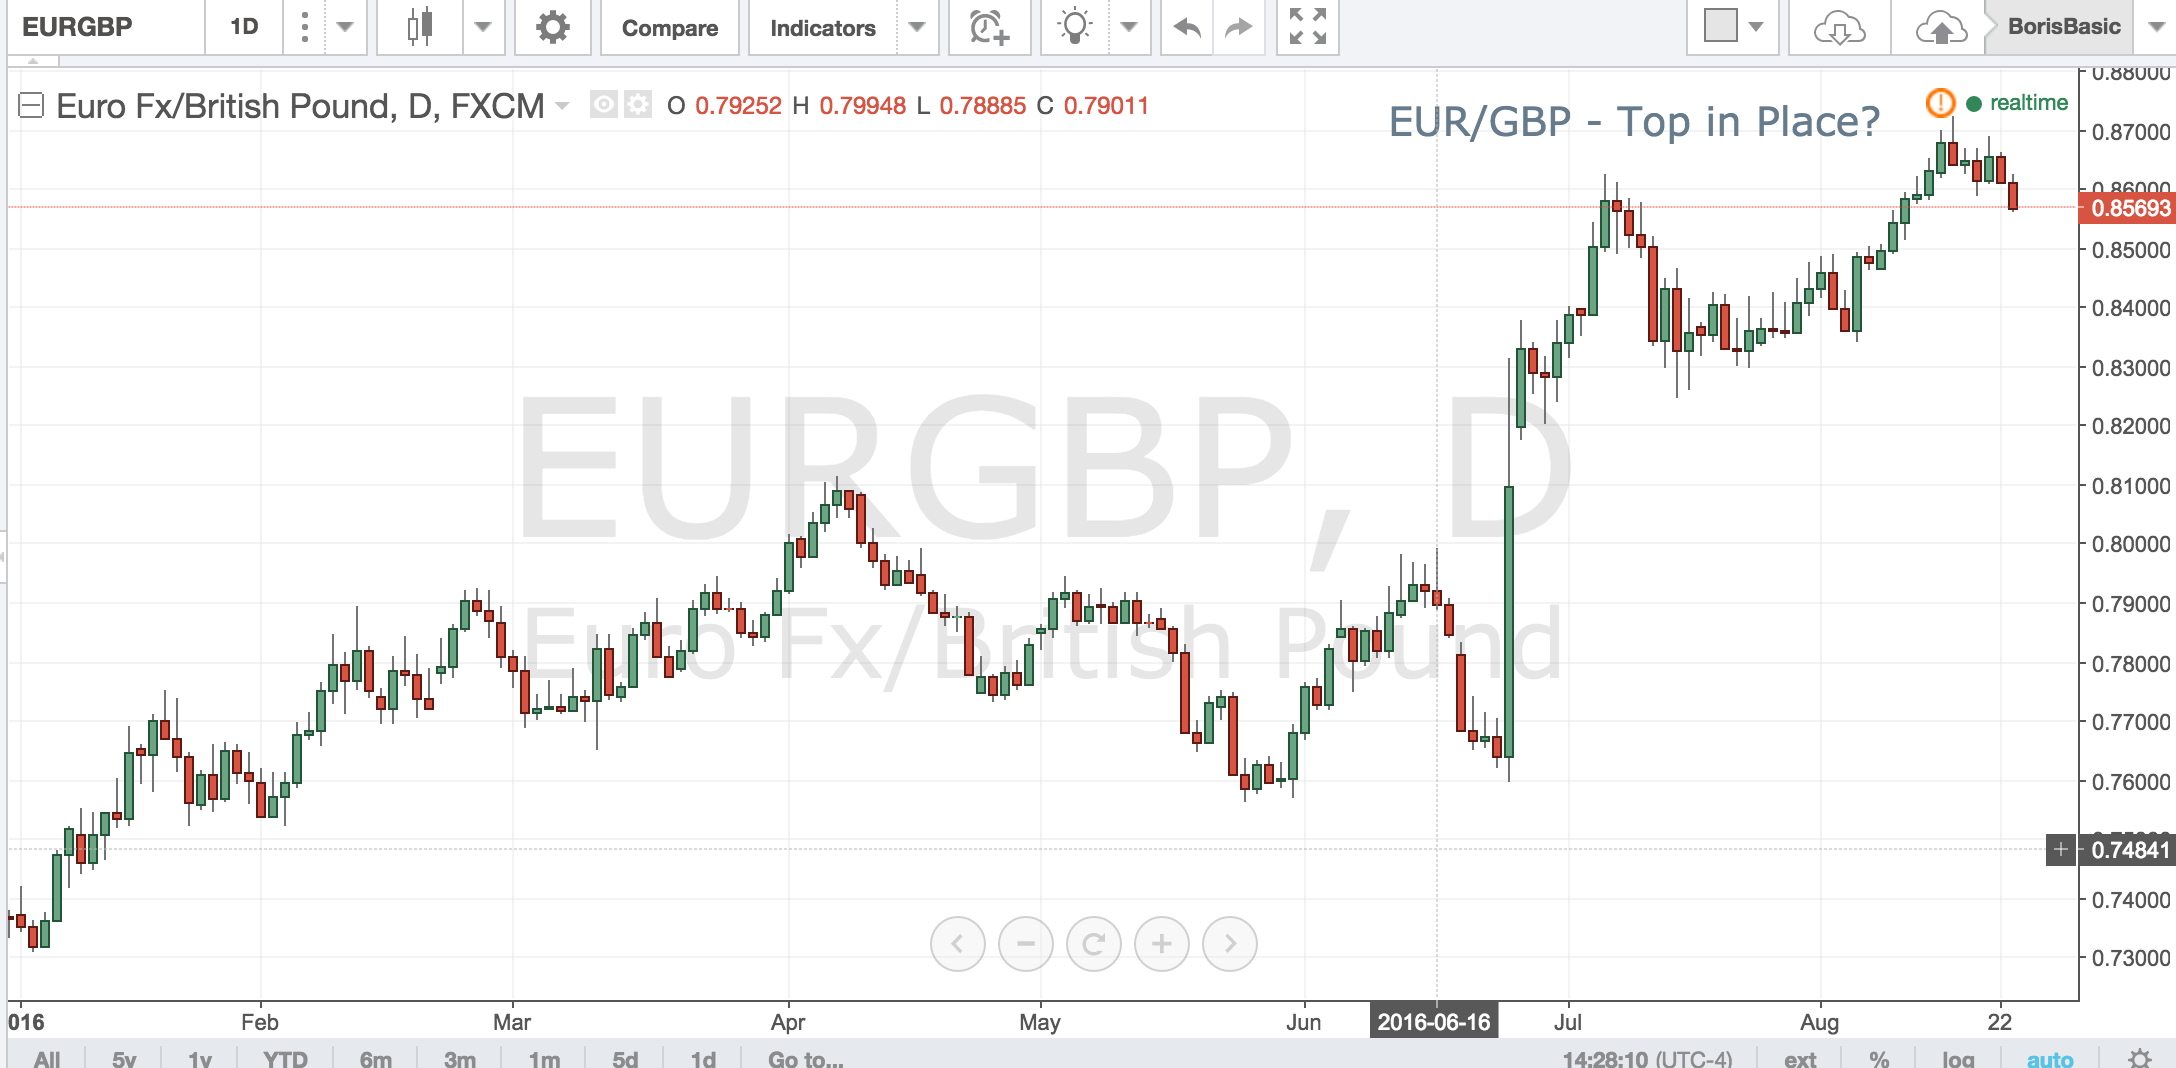 EURGBP – Top in Place?